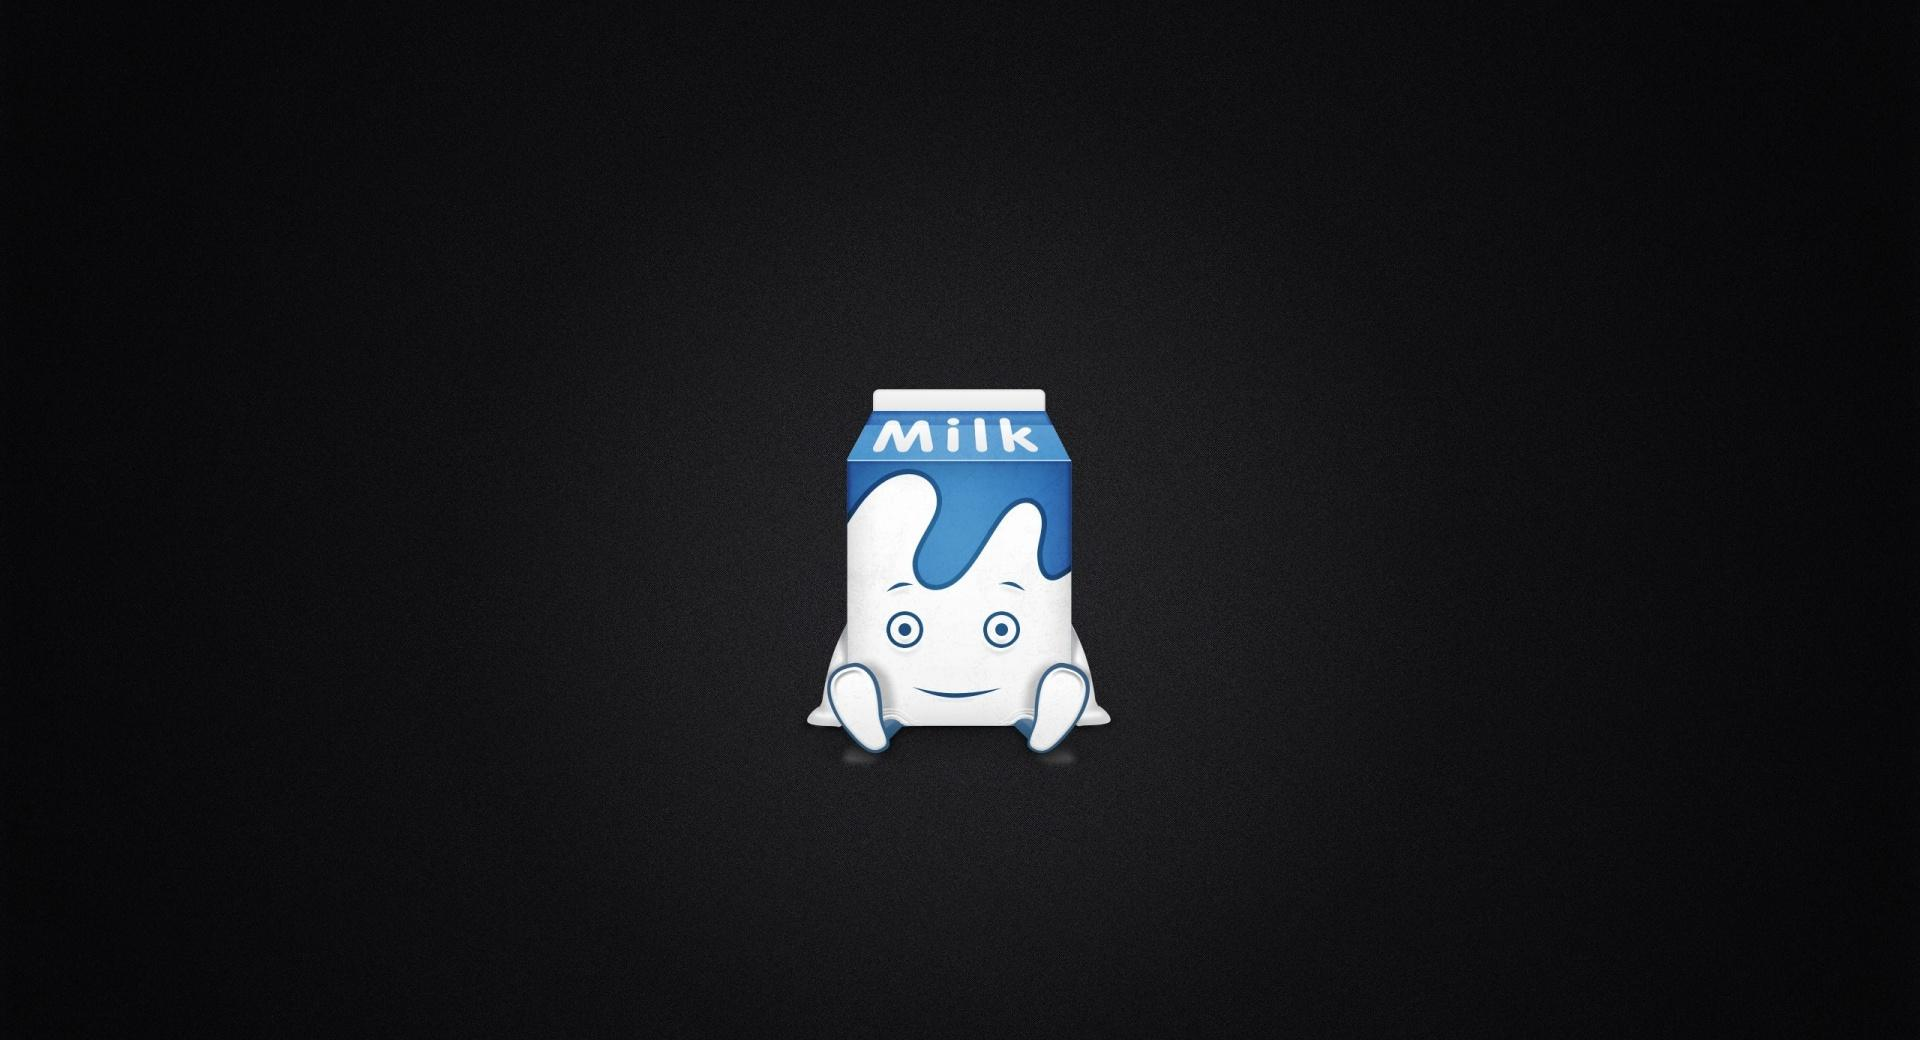 Funny Milk Carton wallpapers HD quality